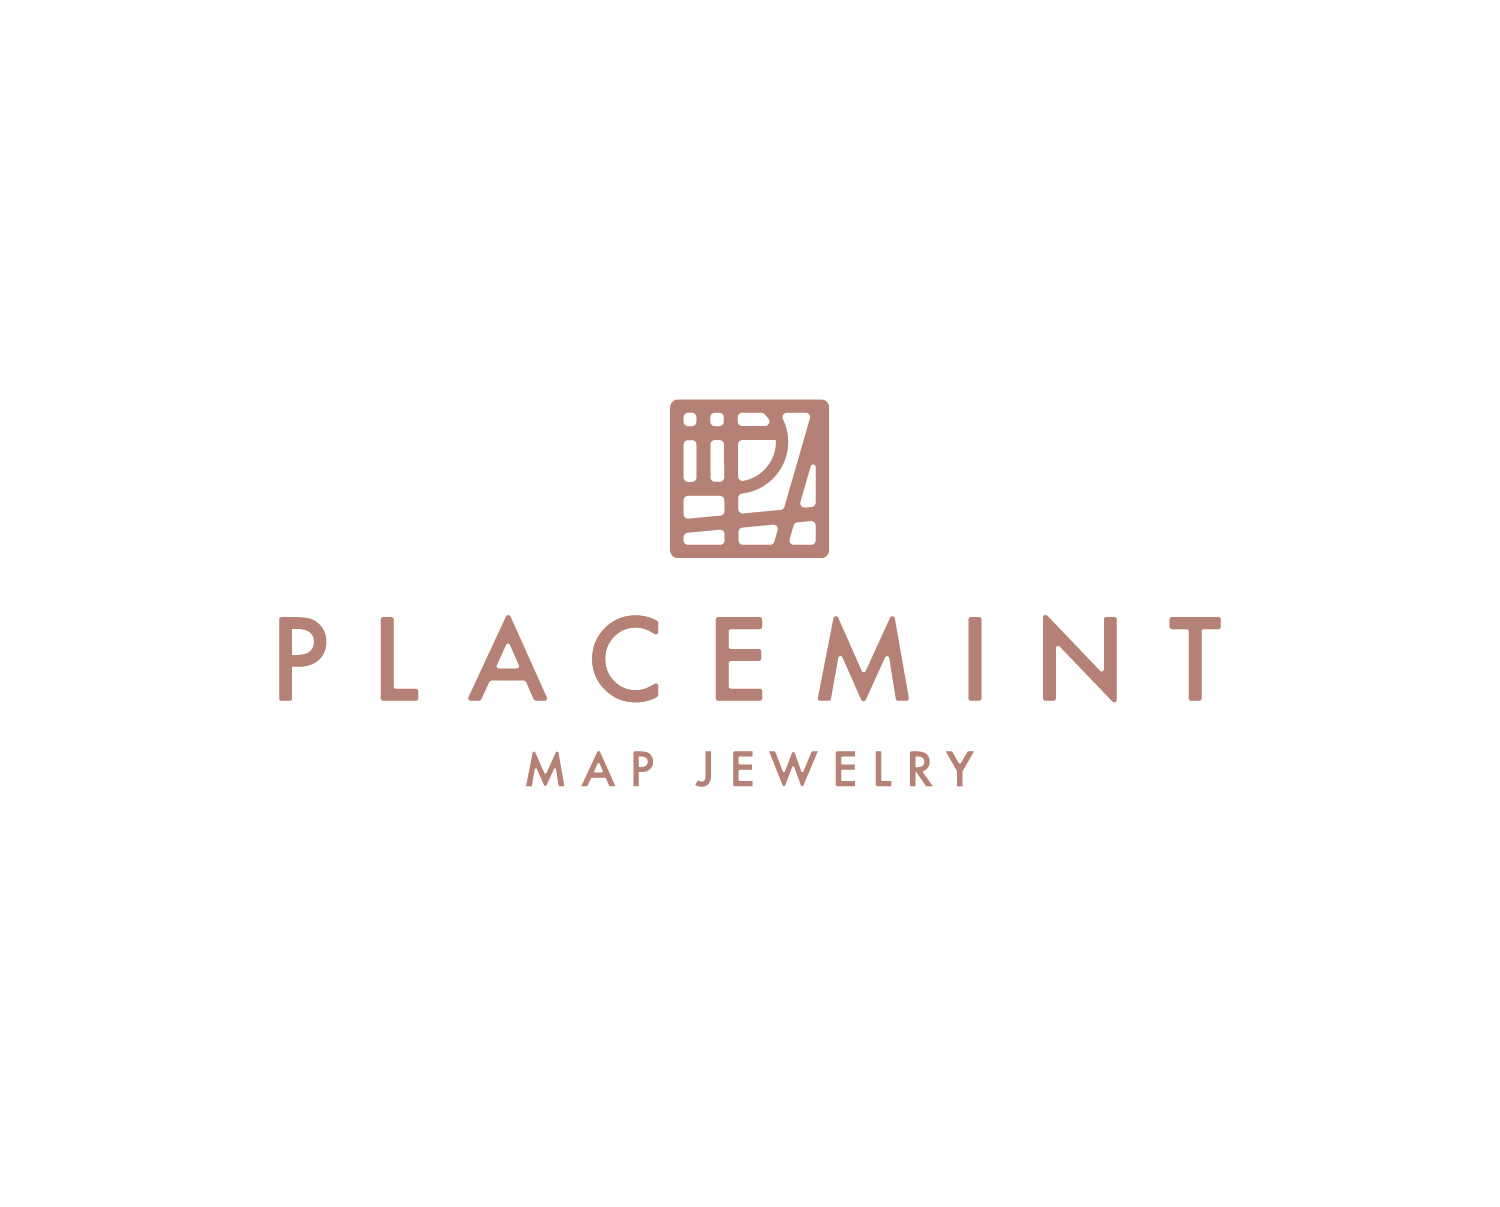 Variable Solution - A complete rebrand of the look and feel + website that allows viewers to understand what Placemint Map Jewelry stands for, what they sell, the emotional connection they want to create,and how to easily navigate through the buying process online.